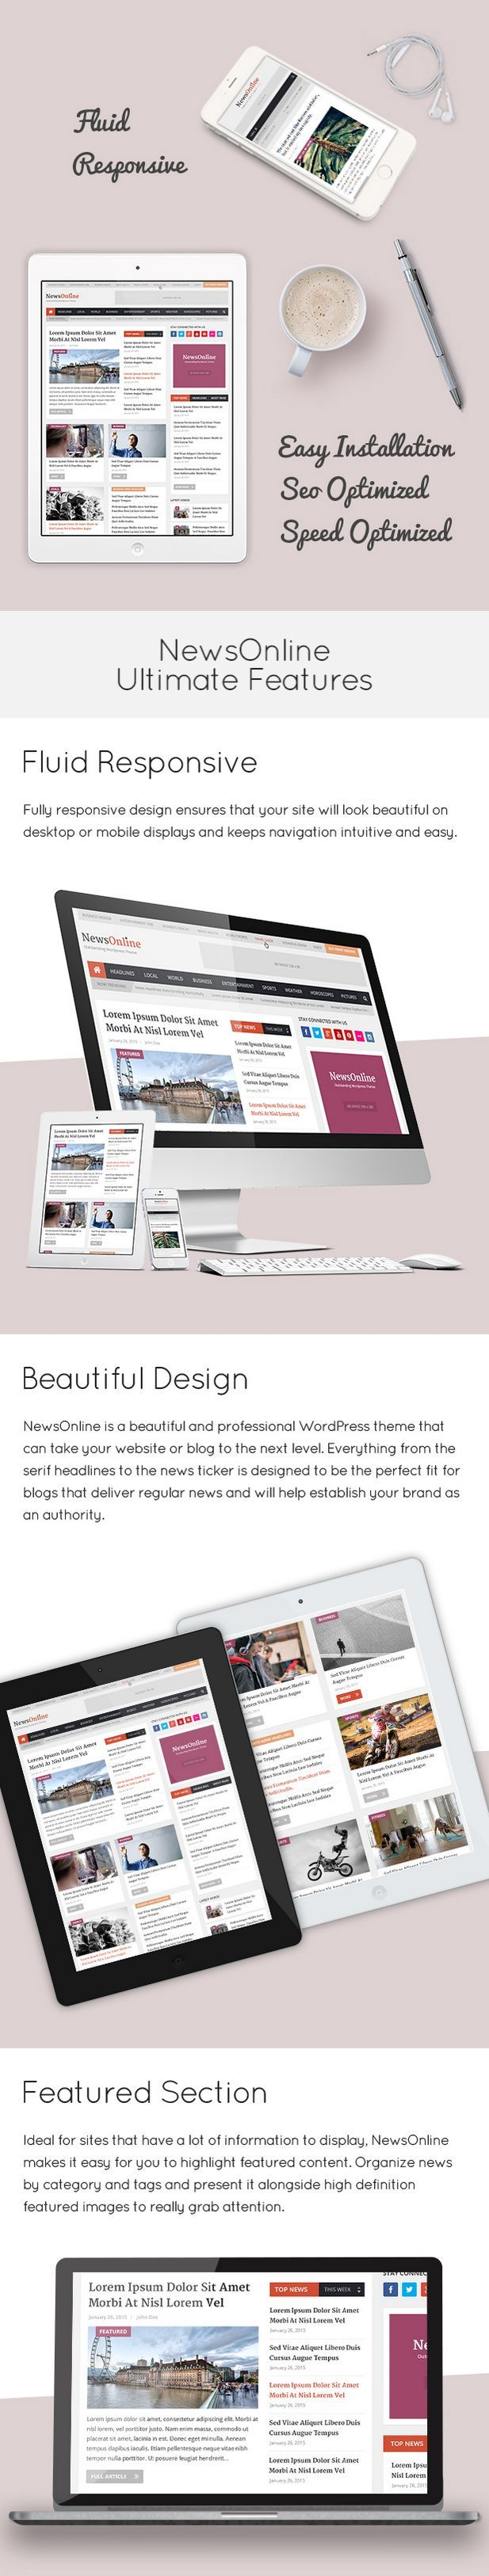 NewsOnline Beautiful & Professional #WordPress #Theme - NewsOnline is a beautiful and professional #responsive WordPress #template with a glossy feel that's perfect for news sites and online magazines. For webmasters and designers looking to build sites that display lots of information in a way that feels authoritative and high quality. Ensure you are able to compete with the top players in your niche!